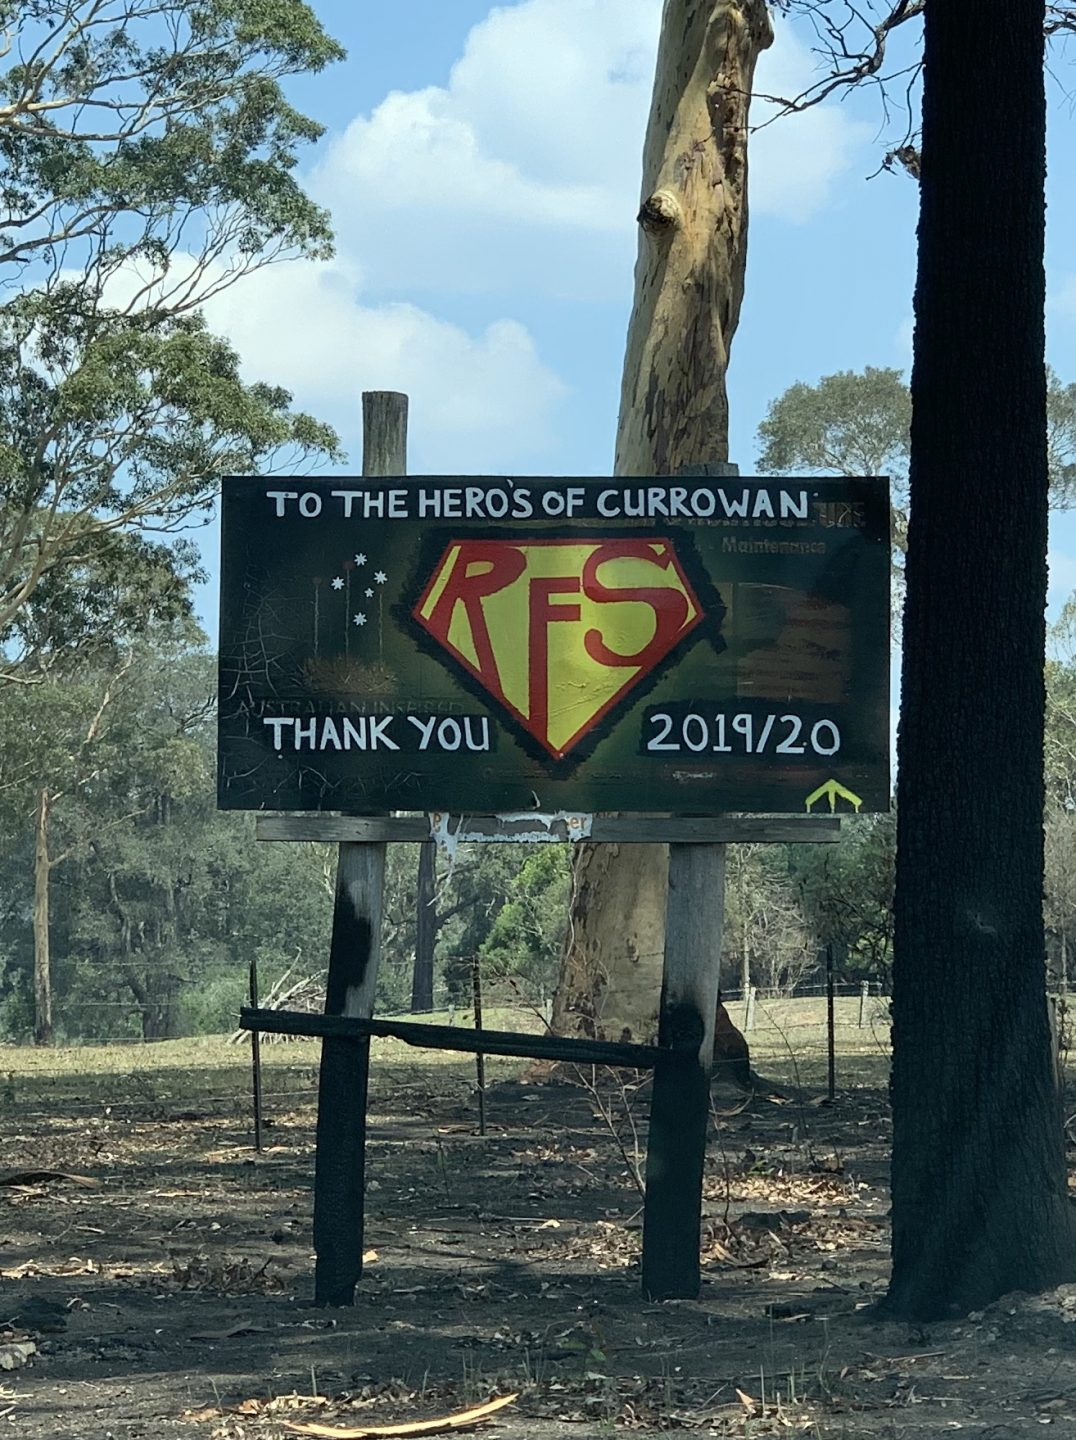 A sign that says 'to the heros of currowan thank you 2019/20' the sign has the letters 'RFS